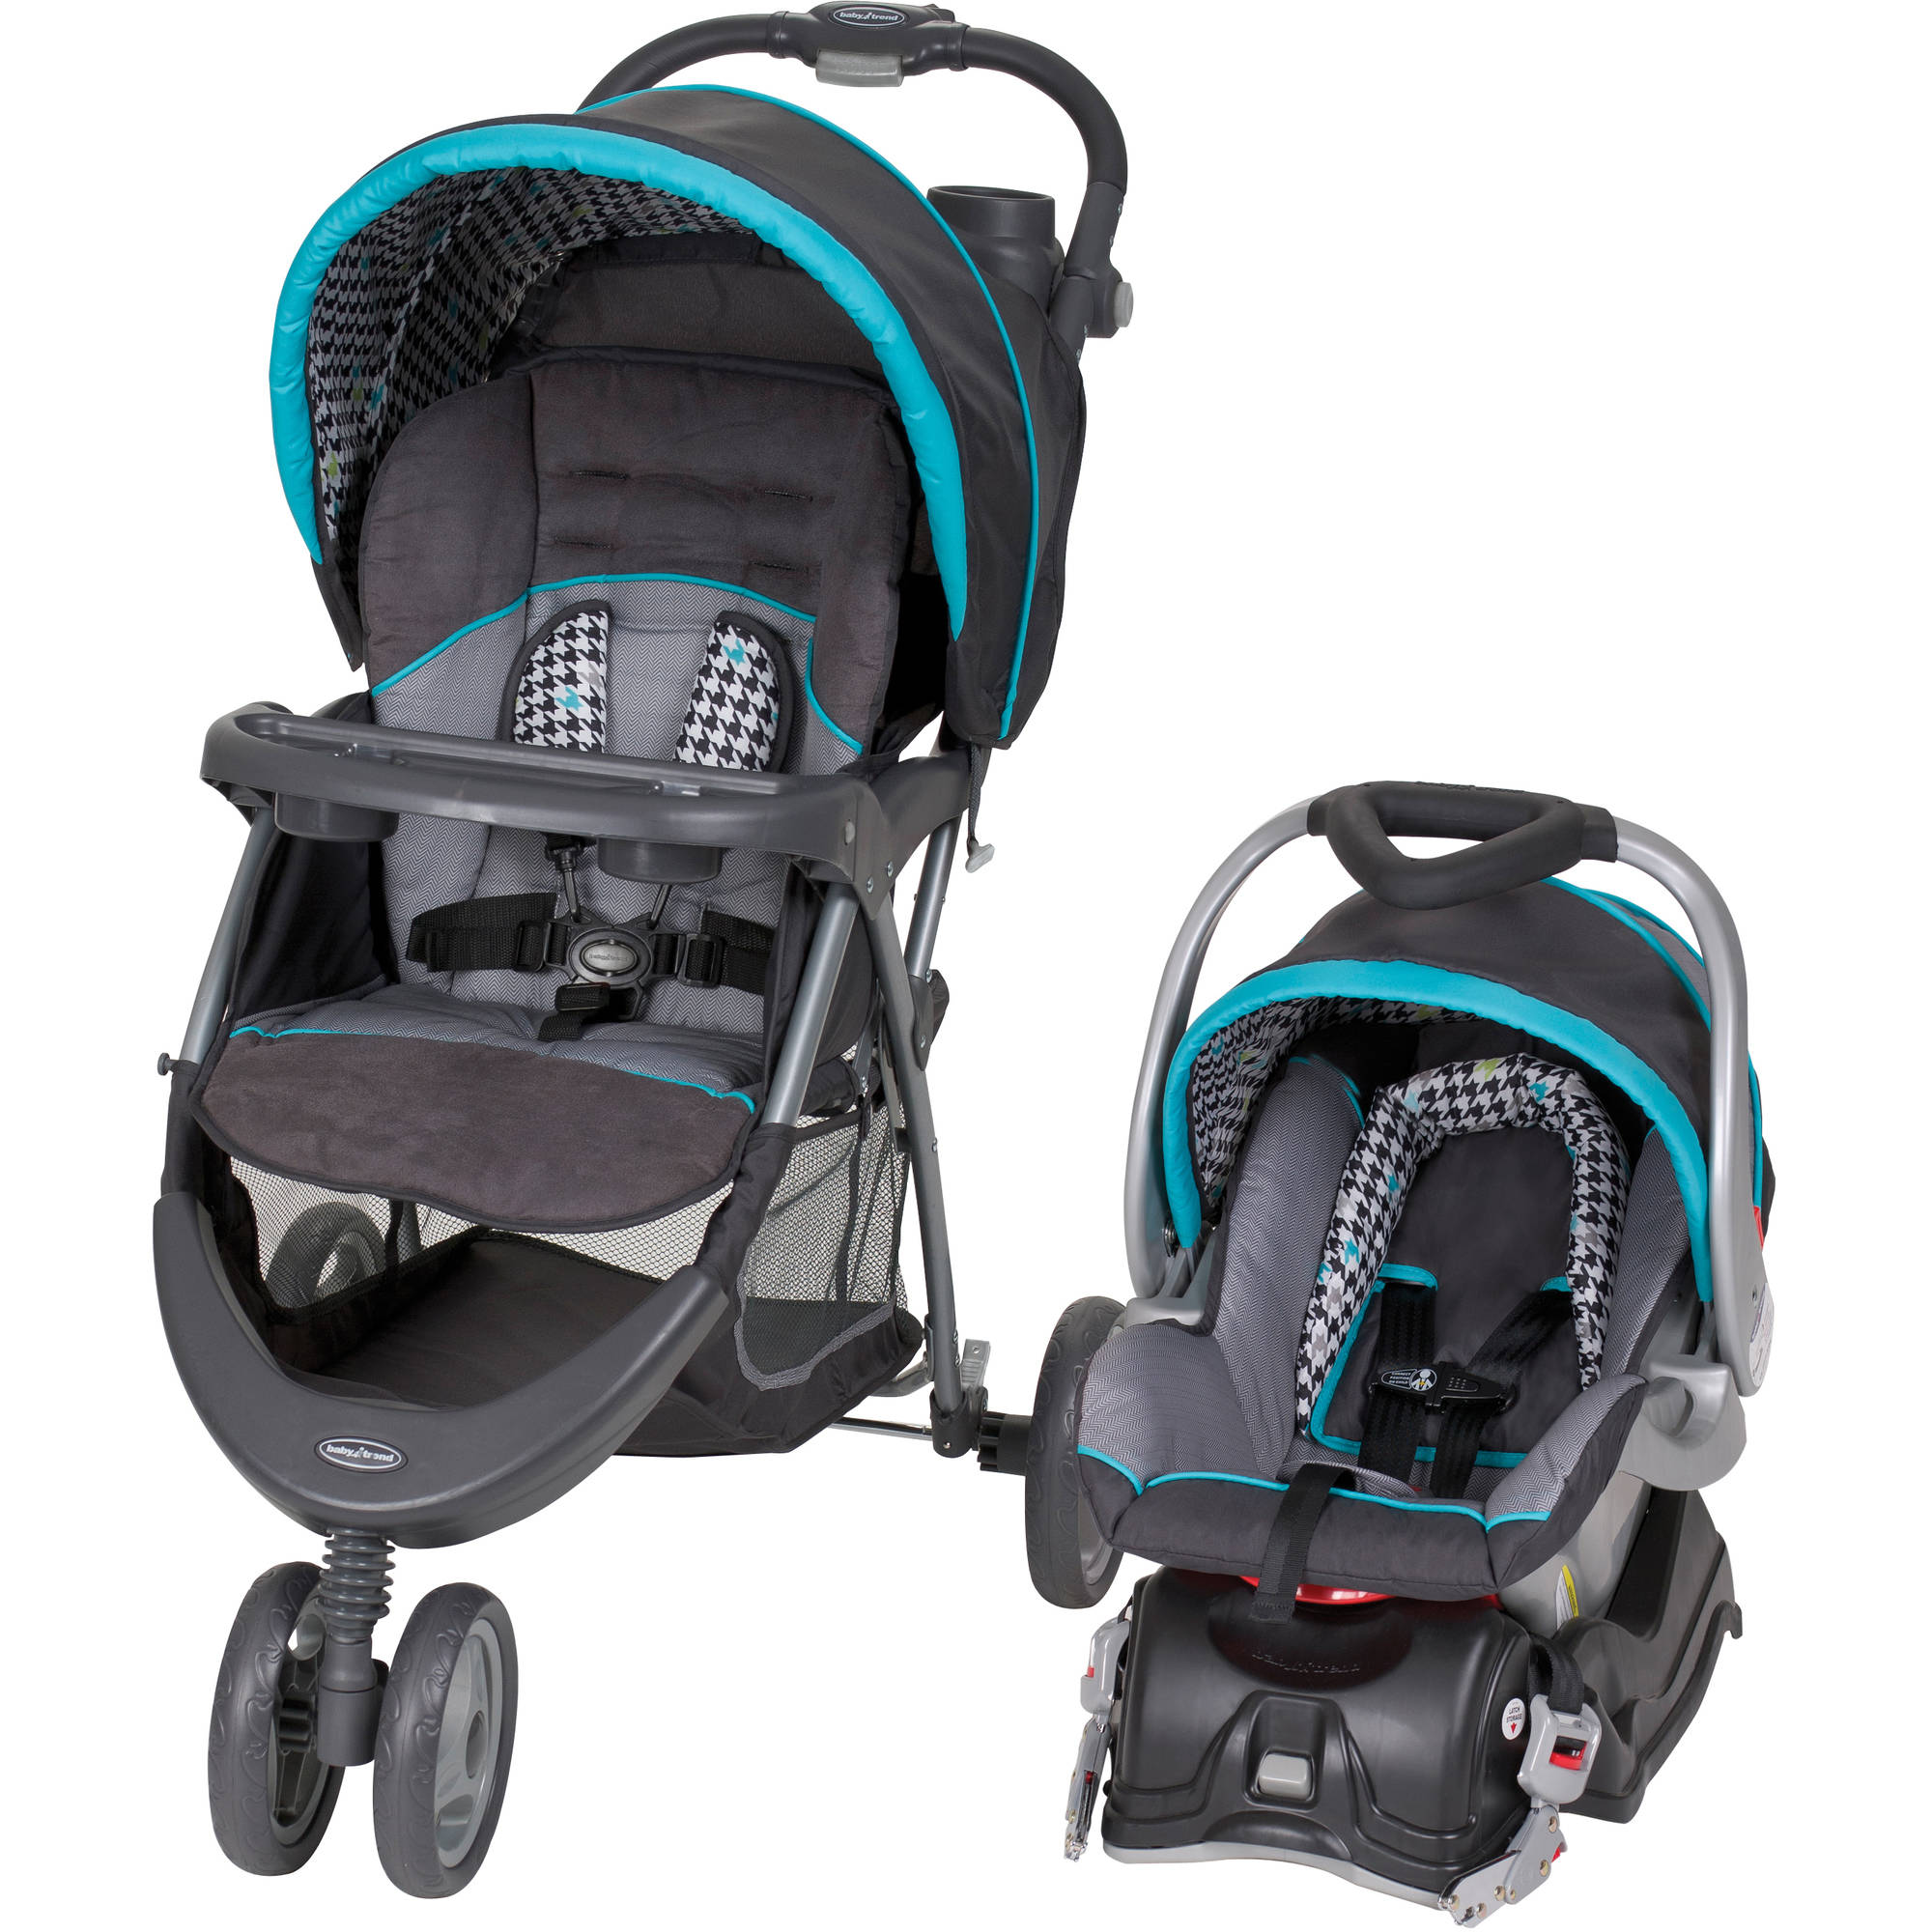 Baby Trend Stroller Car Seat Set Baby Trend Ez Ride 5 Travel System Stroller And Infant Car